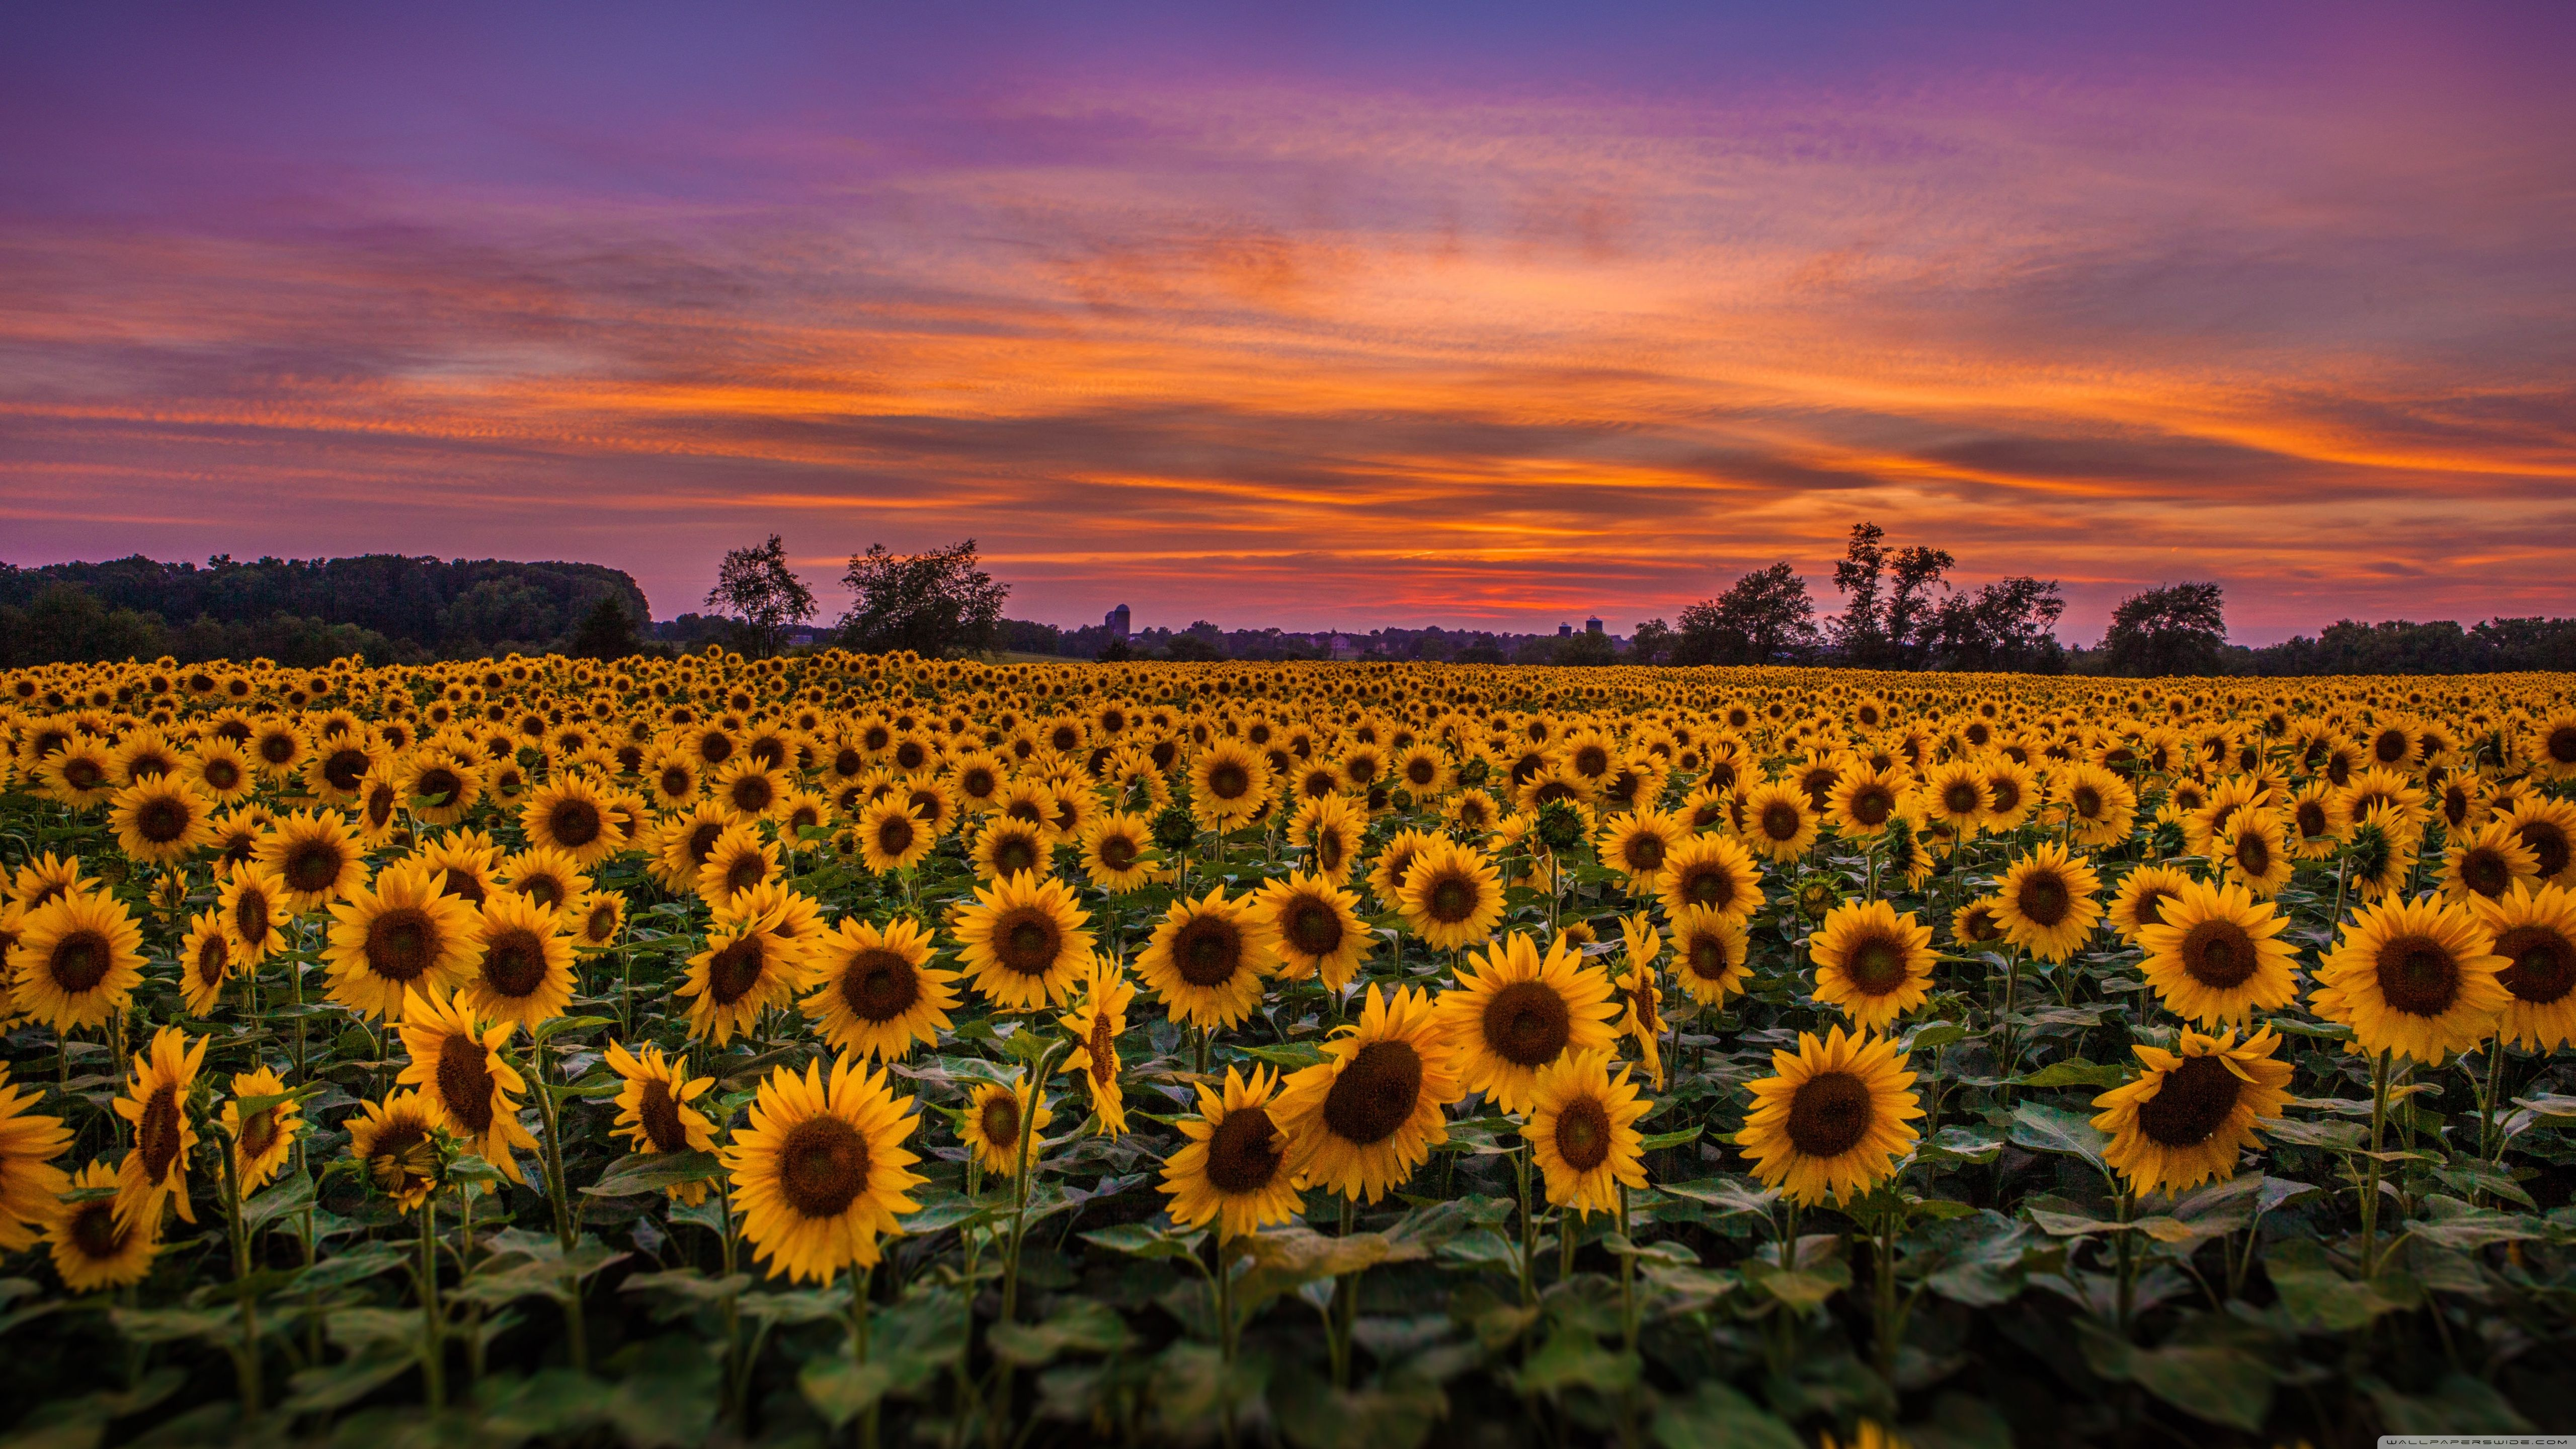 Sunflower Desktop Wallpapers Top Free Sunflower Desktop Backgrounds Wallpaperaccess